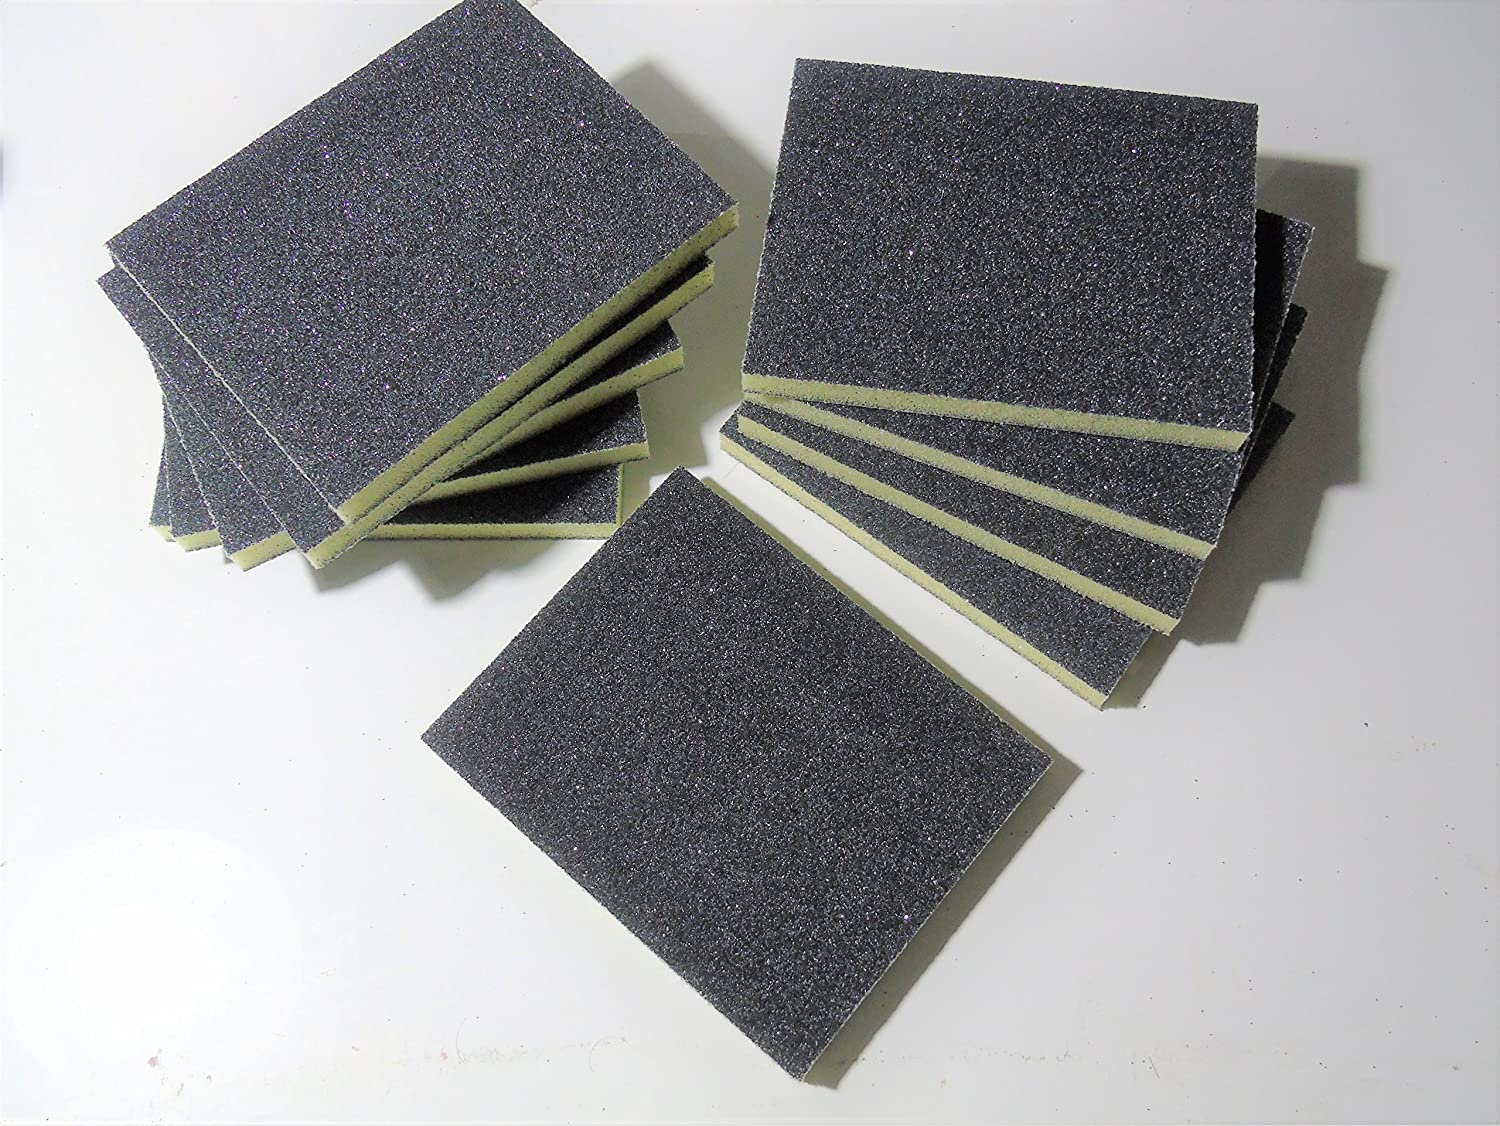 10 x Coarse Grit 60 Double Sided Wet and Dry Abrasive Sanding Sponge Pads Dom' s DIY Direct